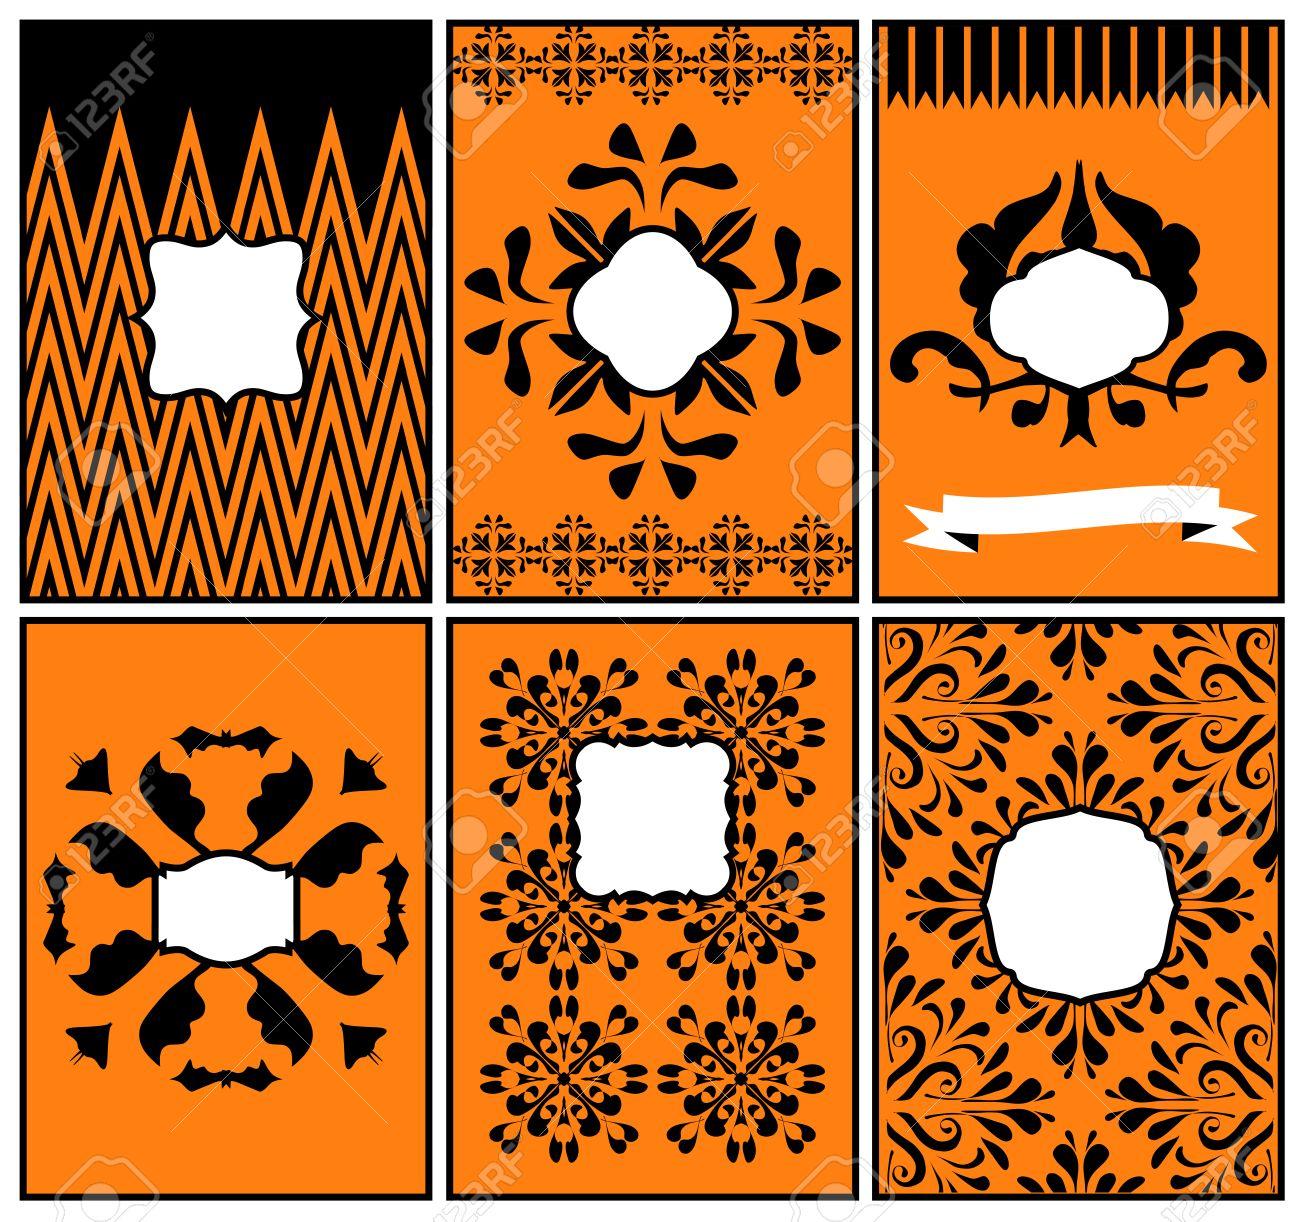 set of halloween templates backgrounds for invitations placecards